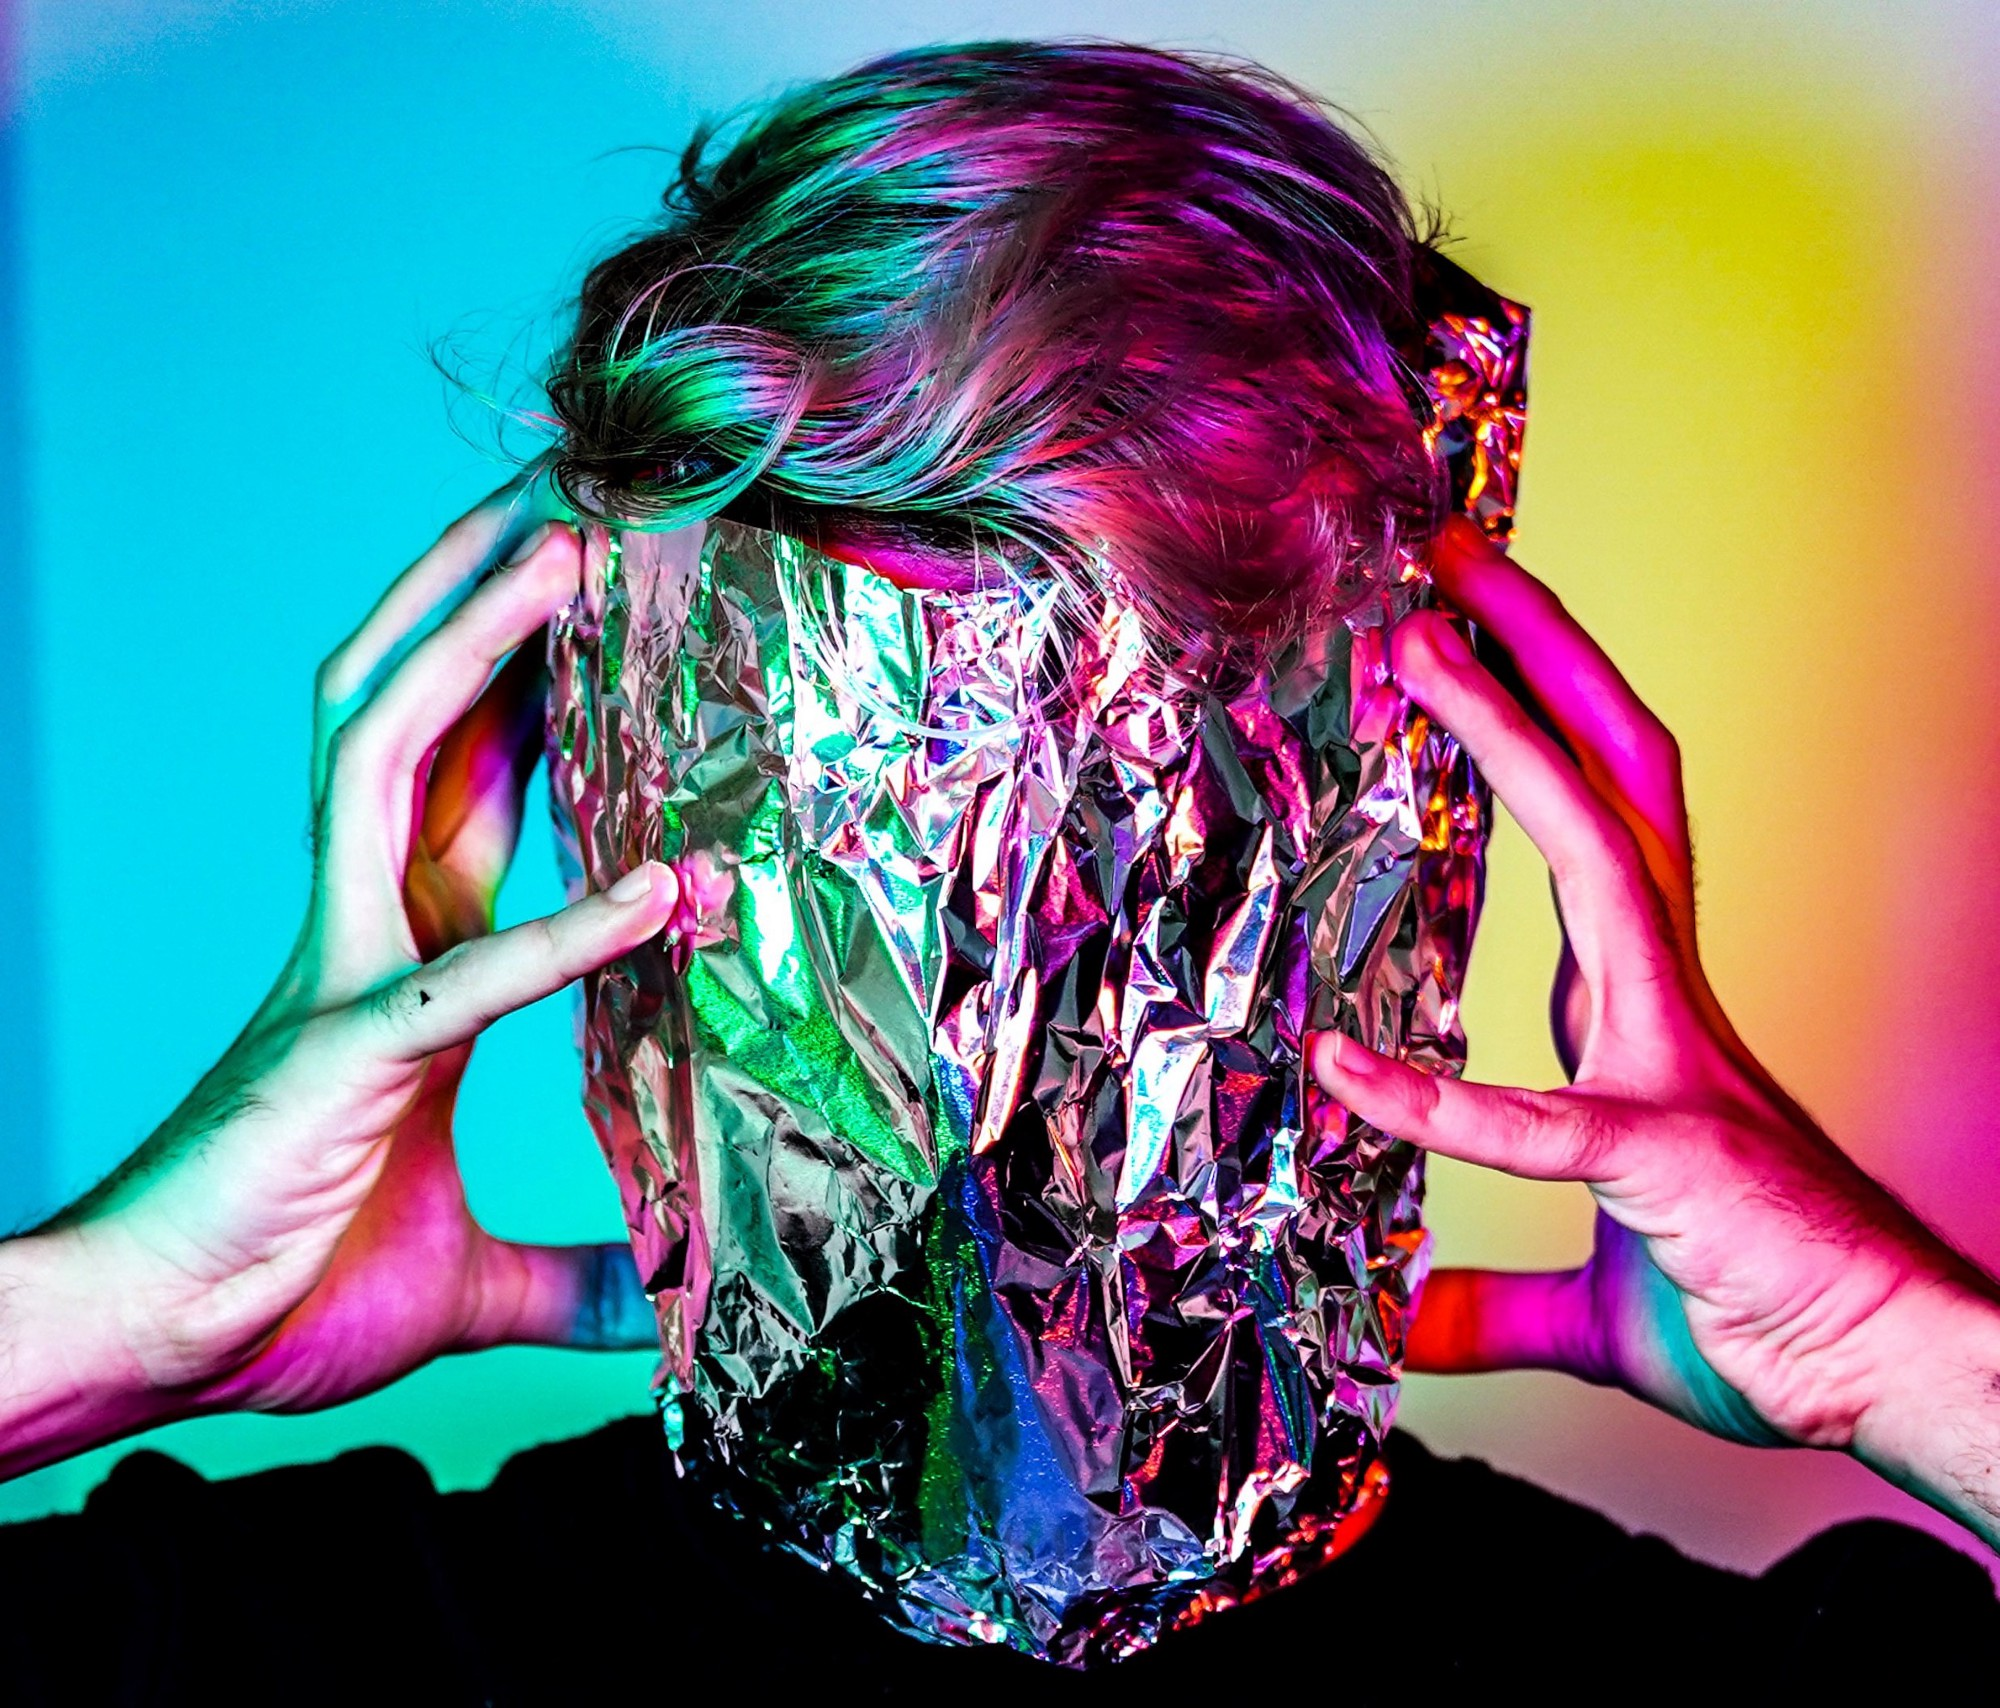 A photo of a person's head with their hands holding a sheet of foil covering their face.